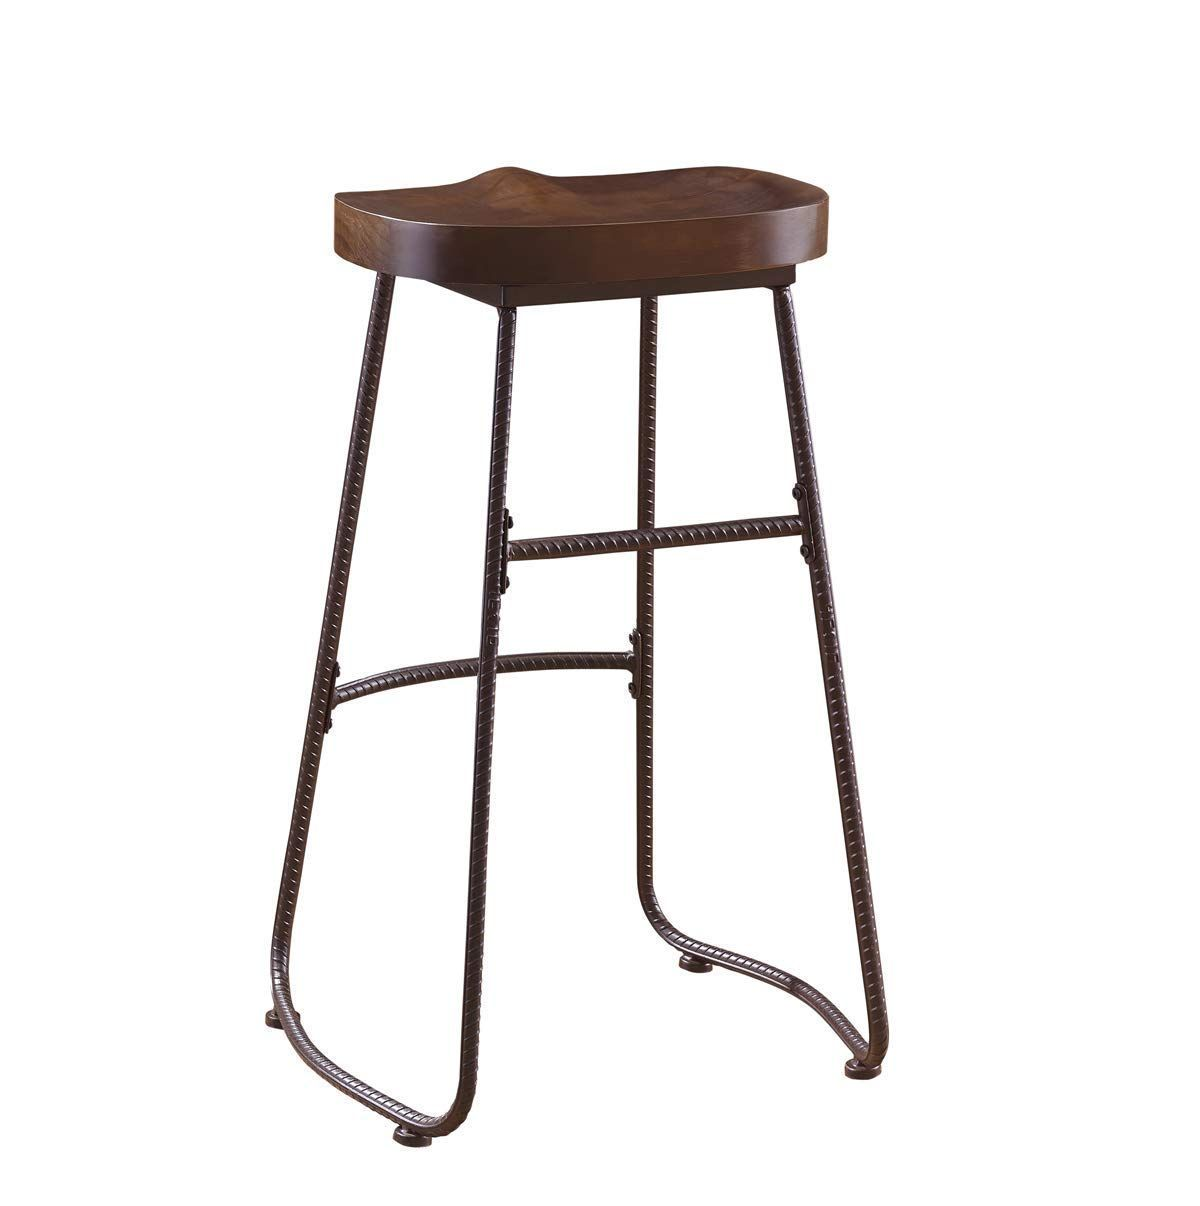 Oandk Furniture 30inch Retro Bar Stool Kitchen Chair Backless